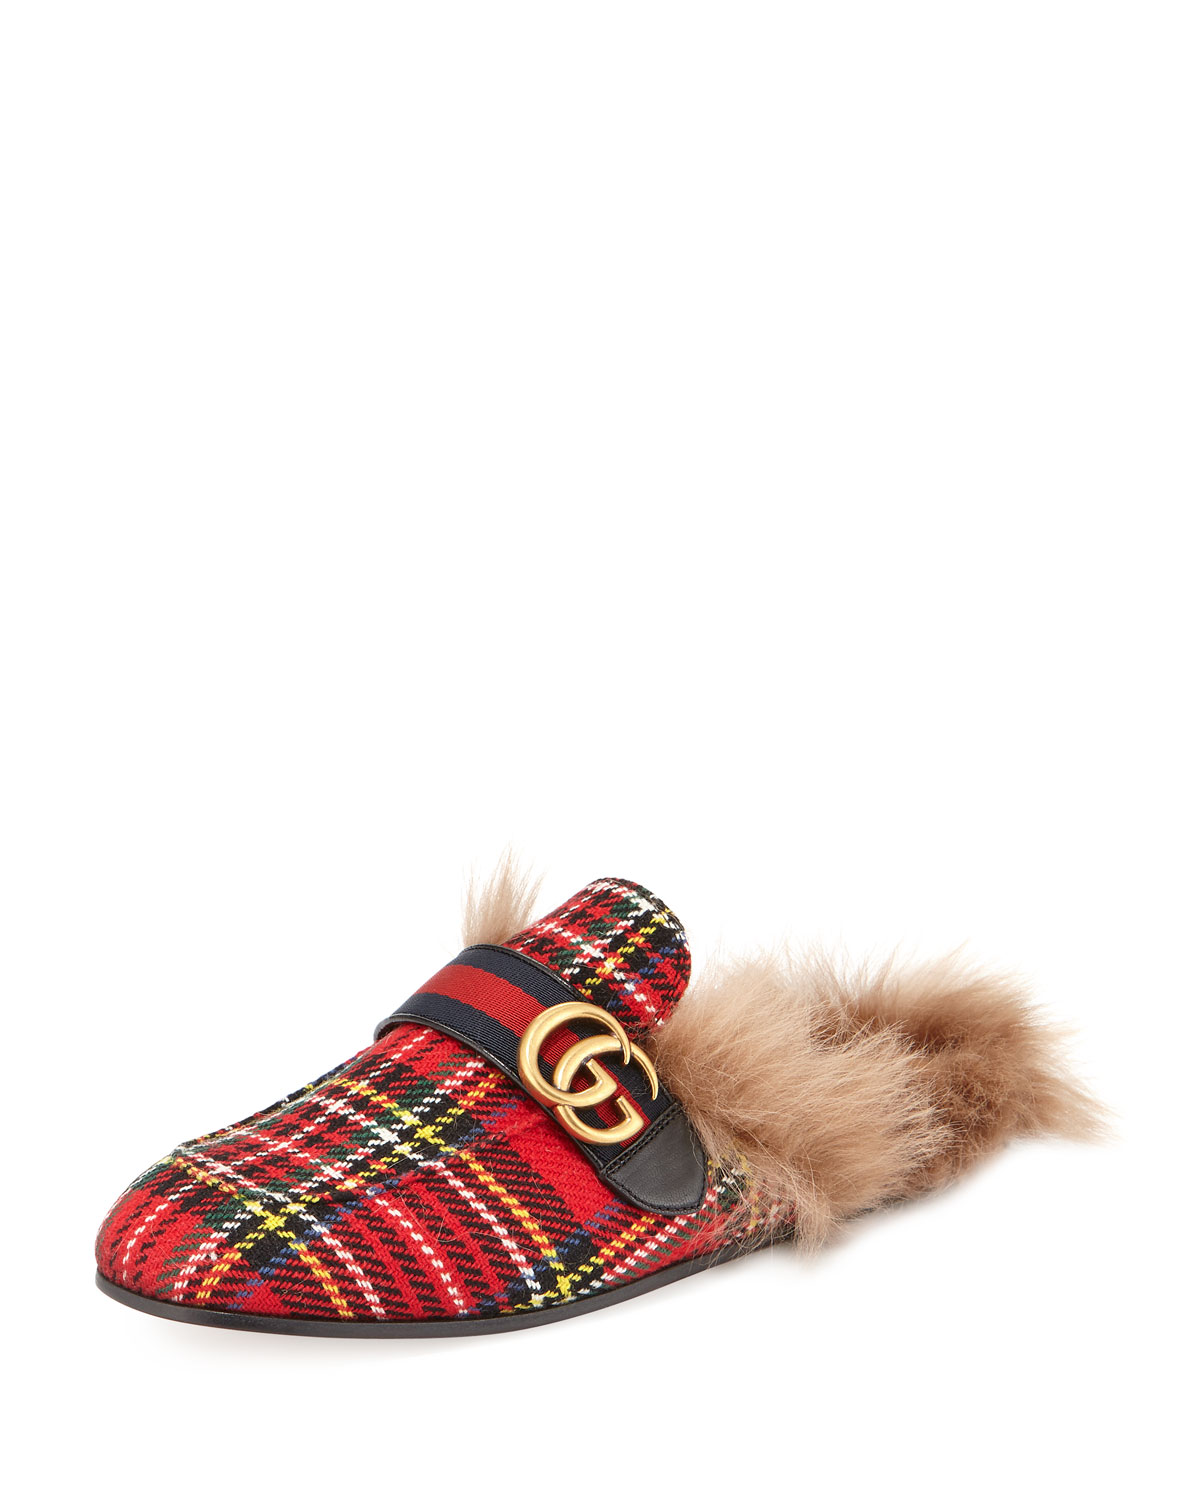 fe4f9bb58 Gucci Princetown Tartan Slipper with Double G | Neiman Marcus